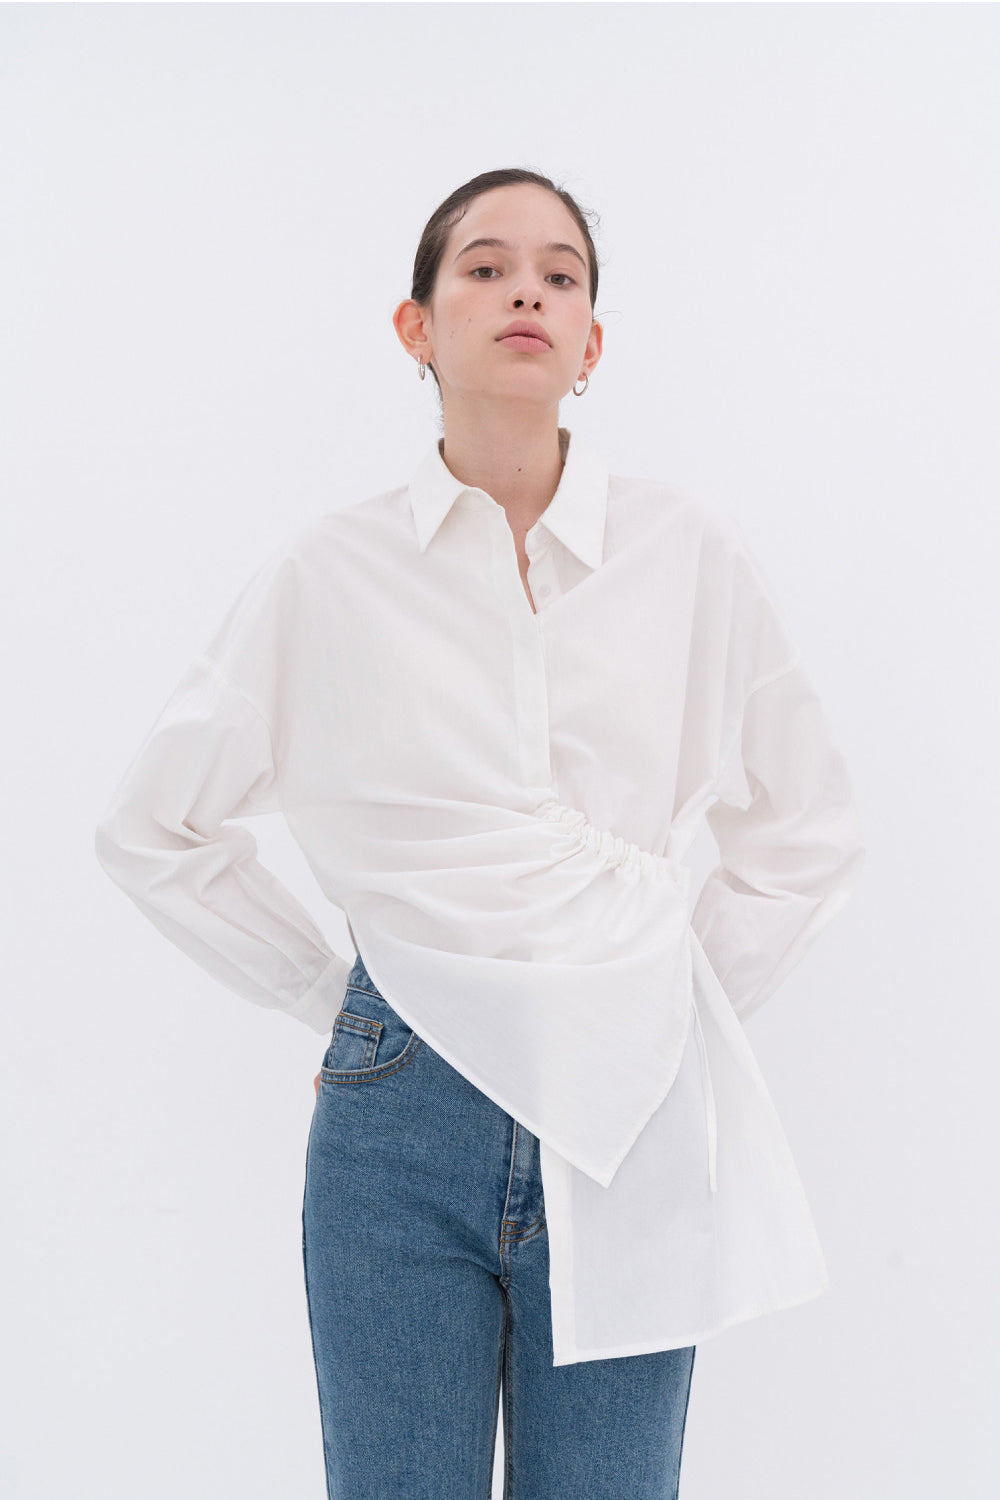 NOTA String Shirring Unbalance Shirt White Modest Asymmetric Front Drape Ladies Loose Fit Top With Long Sleeves 100% Cotton